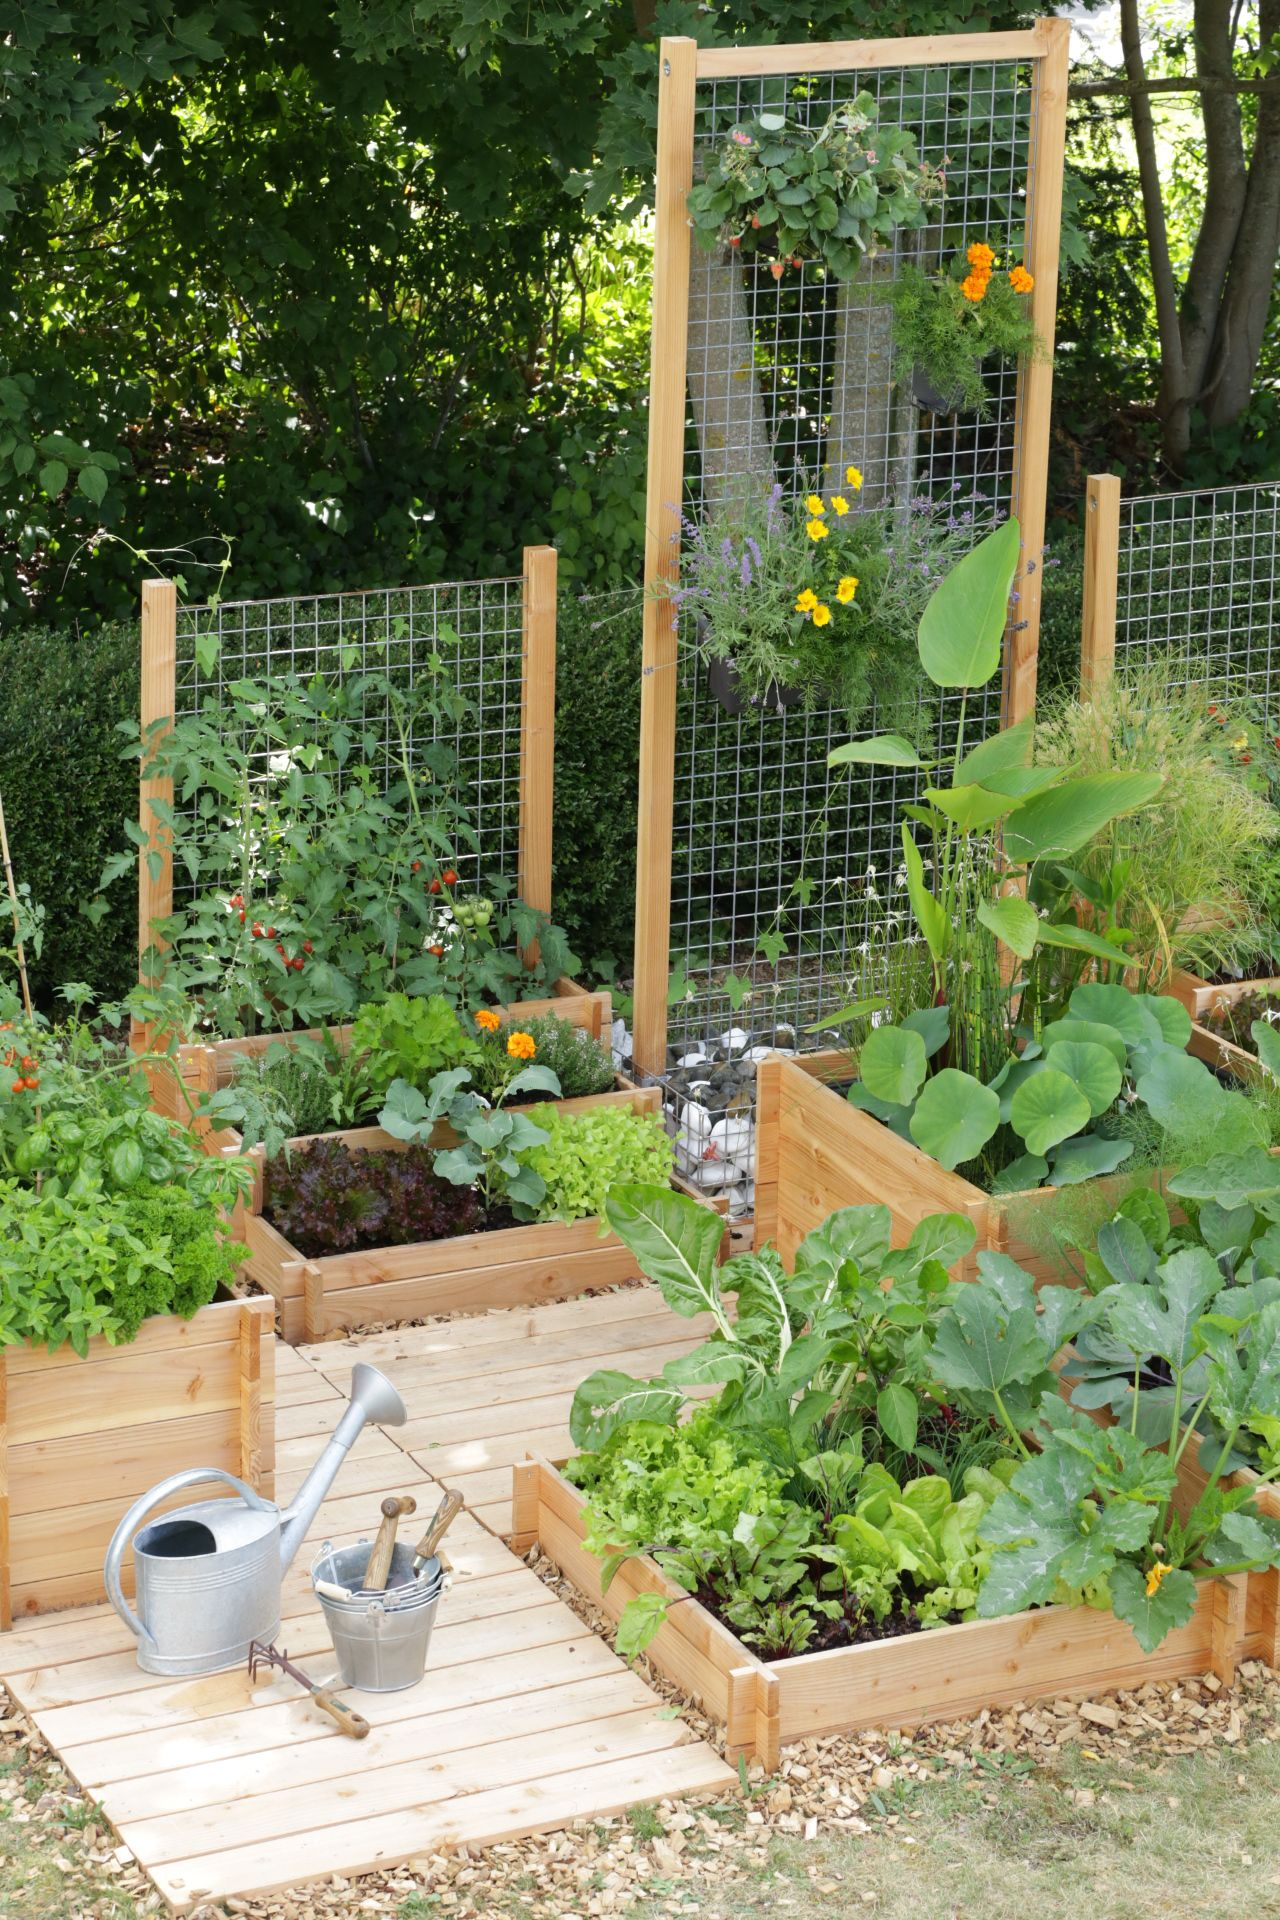 10 Ways to Style Your Very Own Vegetable Garden Gardens